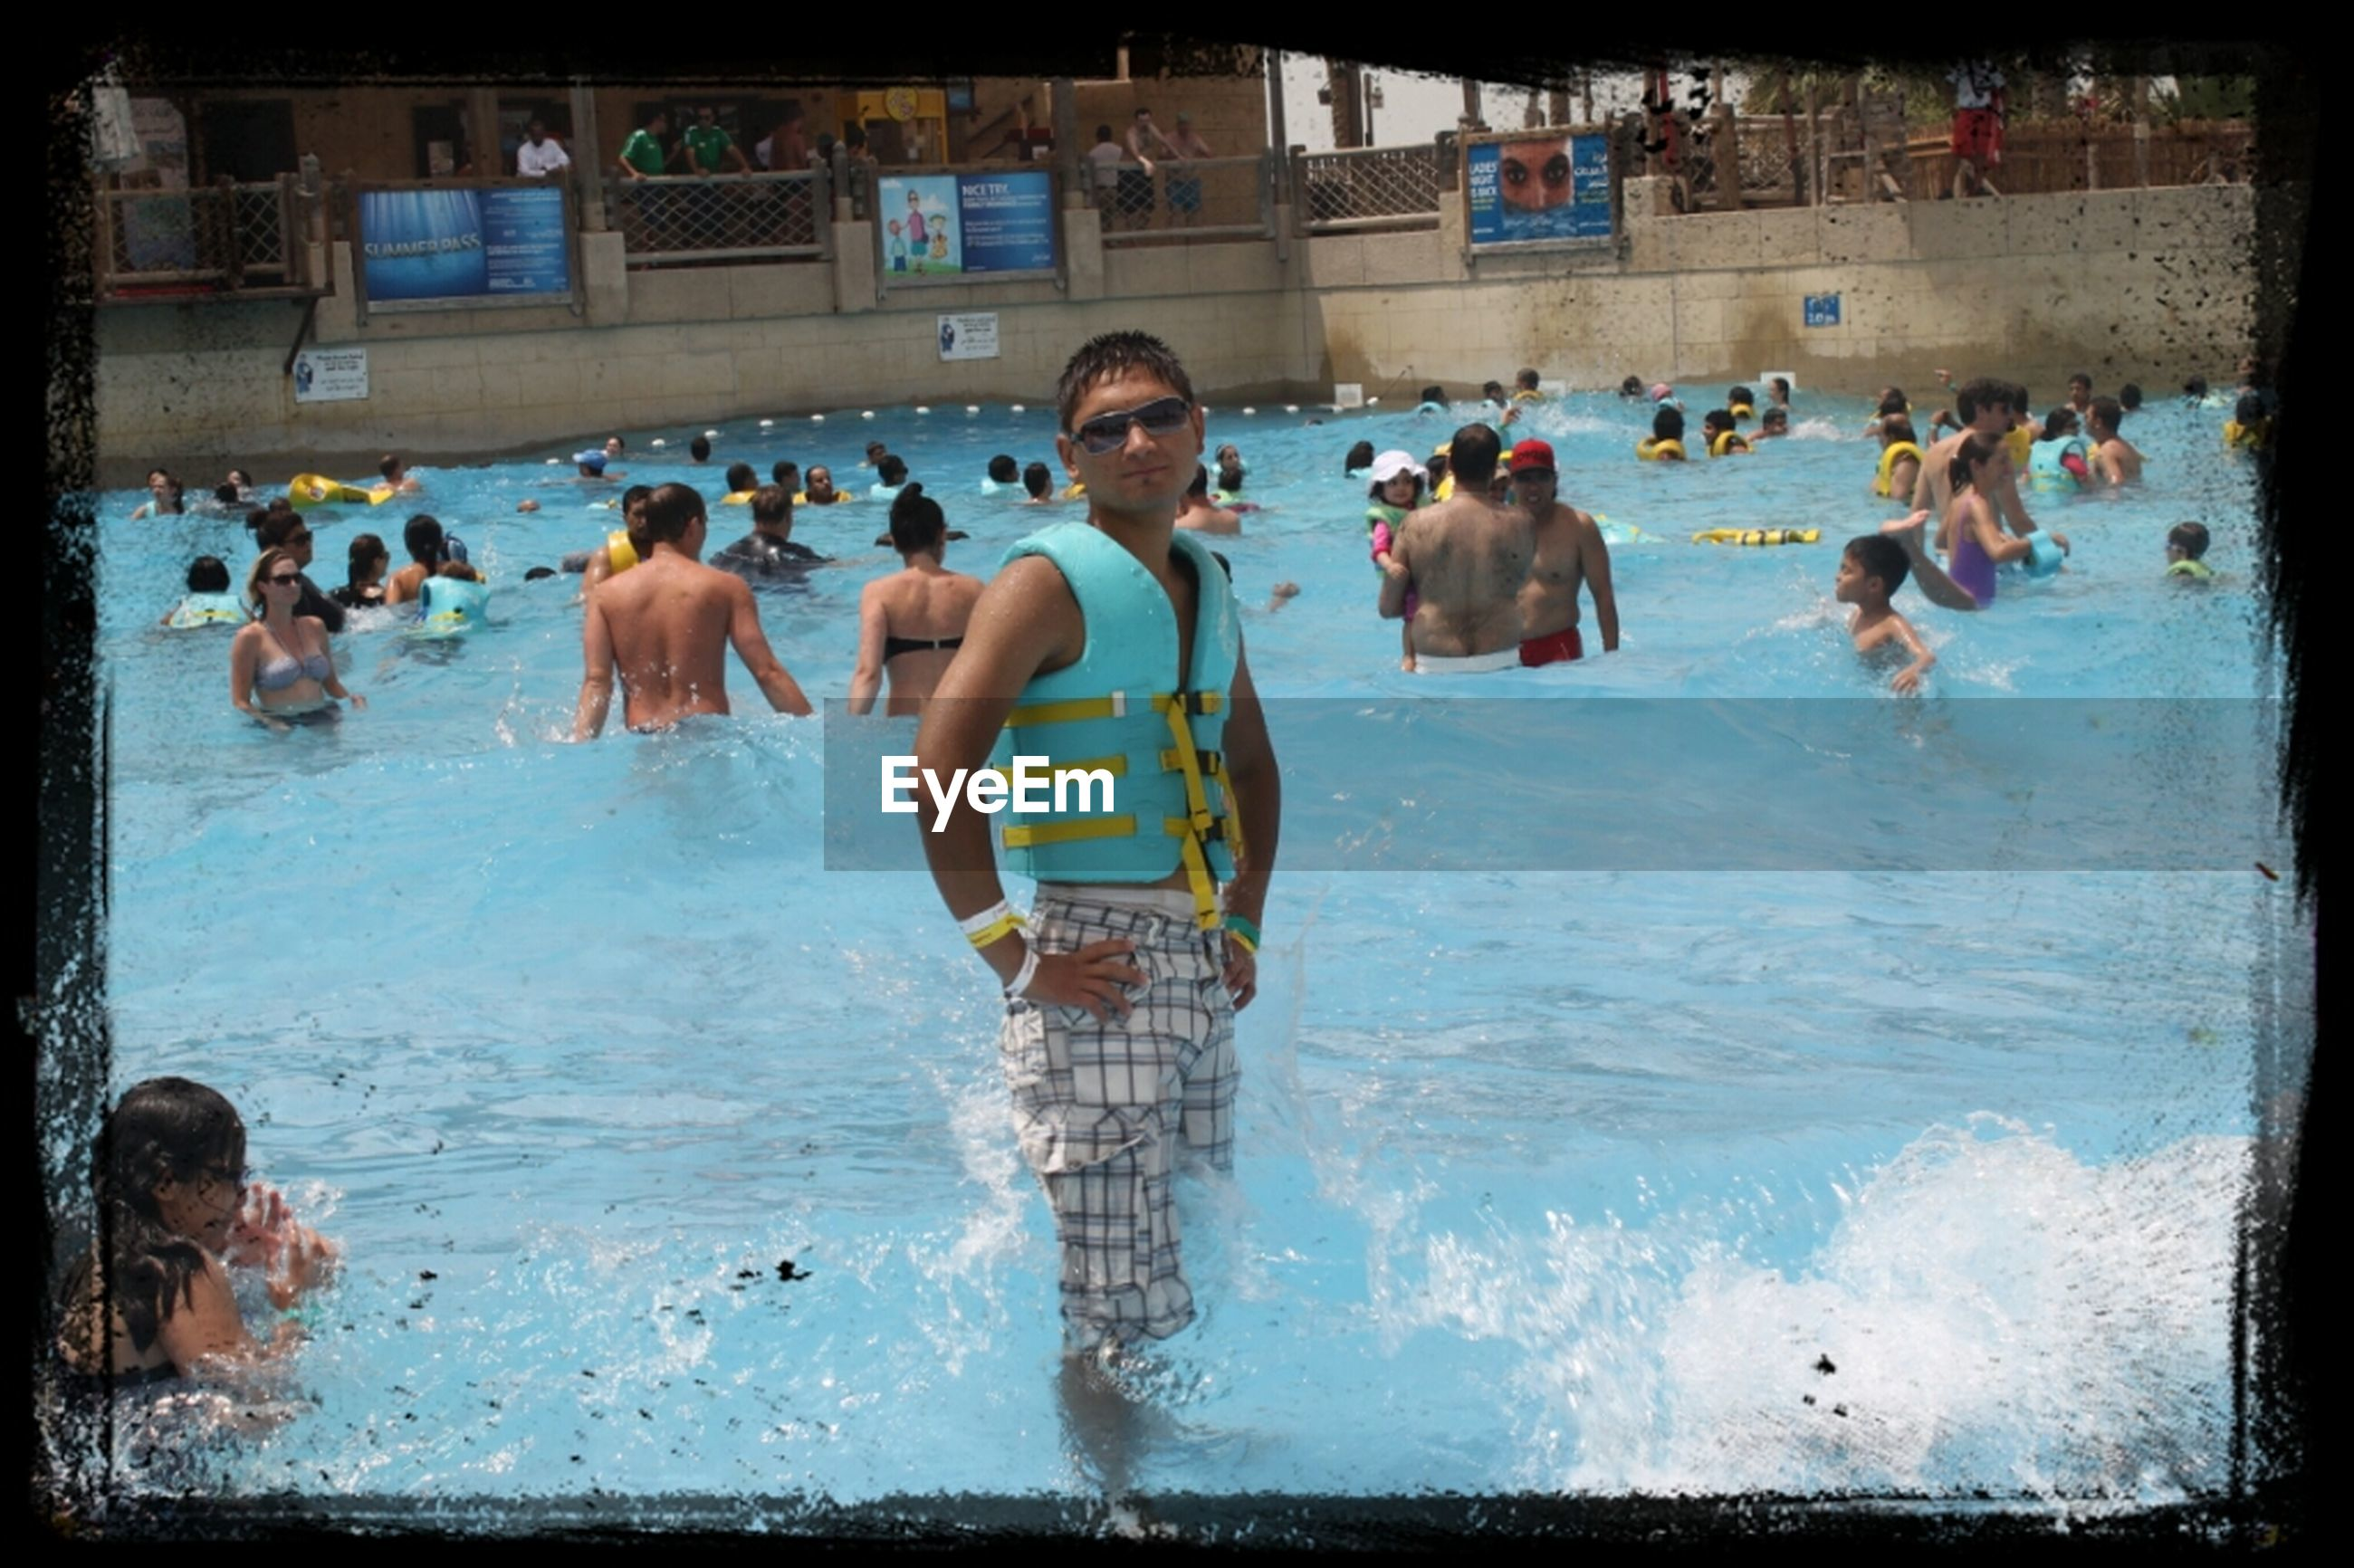 water, large group of people, lifestyles, leisure activity, men, sea, person, beach, vacations, mixed age range, enjoyment, tourist, medium group of people, shore, enjoying, travel, day, weekend activities, tourism